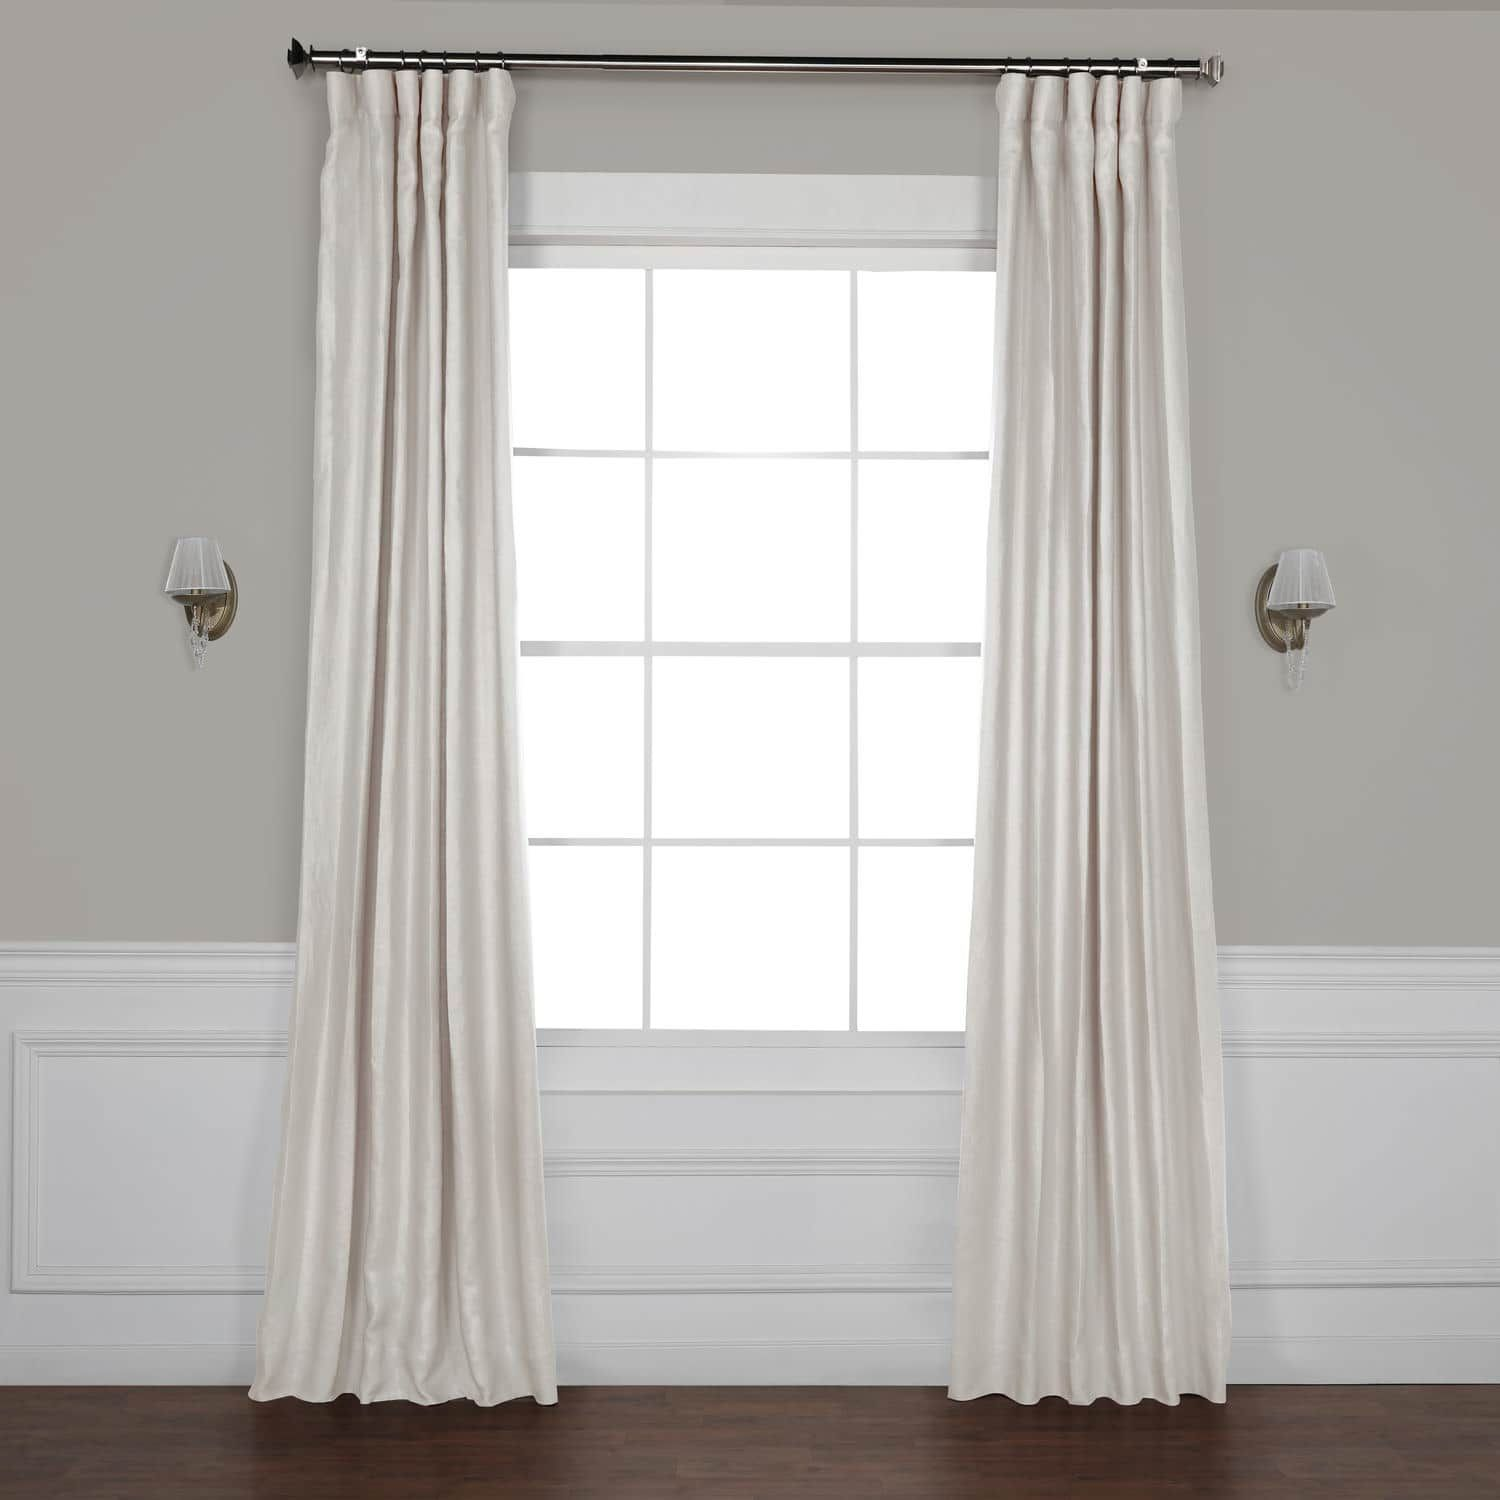 Earl Grey French Linen Curtain Velvet Curtains Lined Curtains Panel Curtains